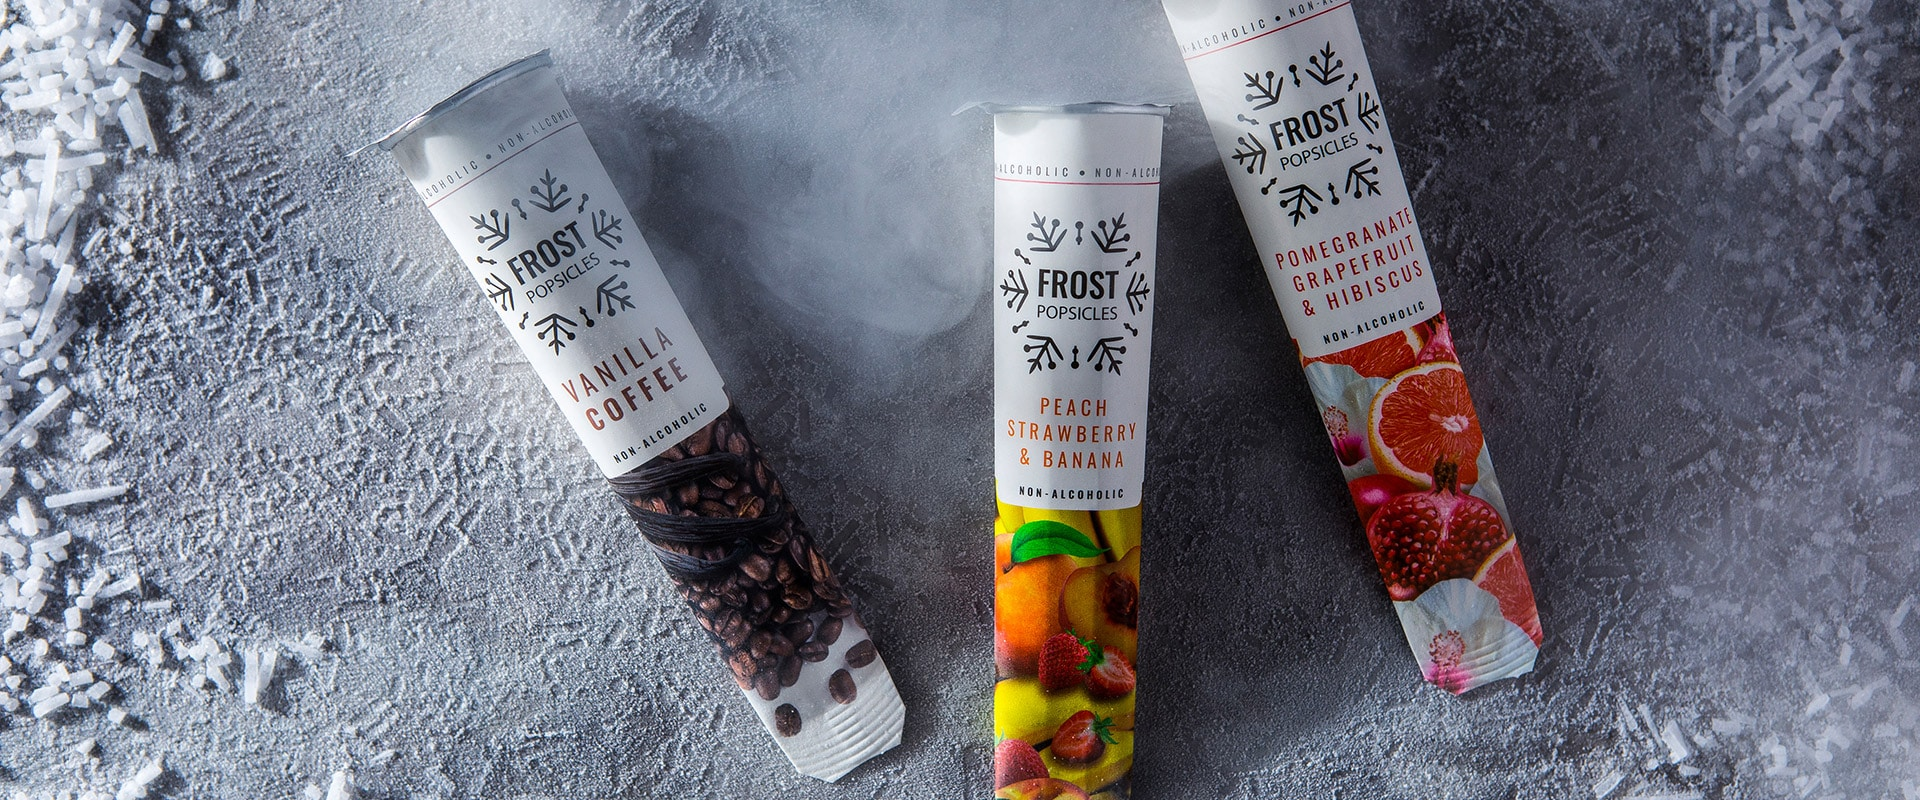 Frost Popsicles - Non-Alcoholic Range